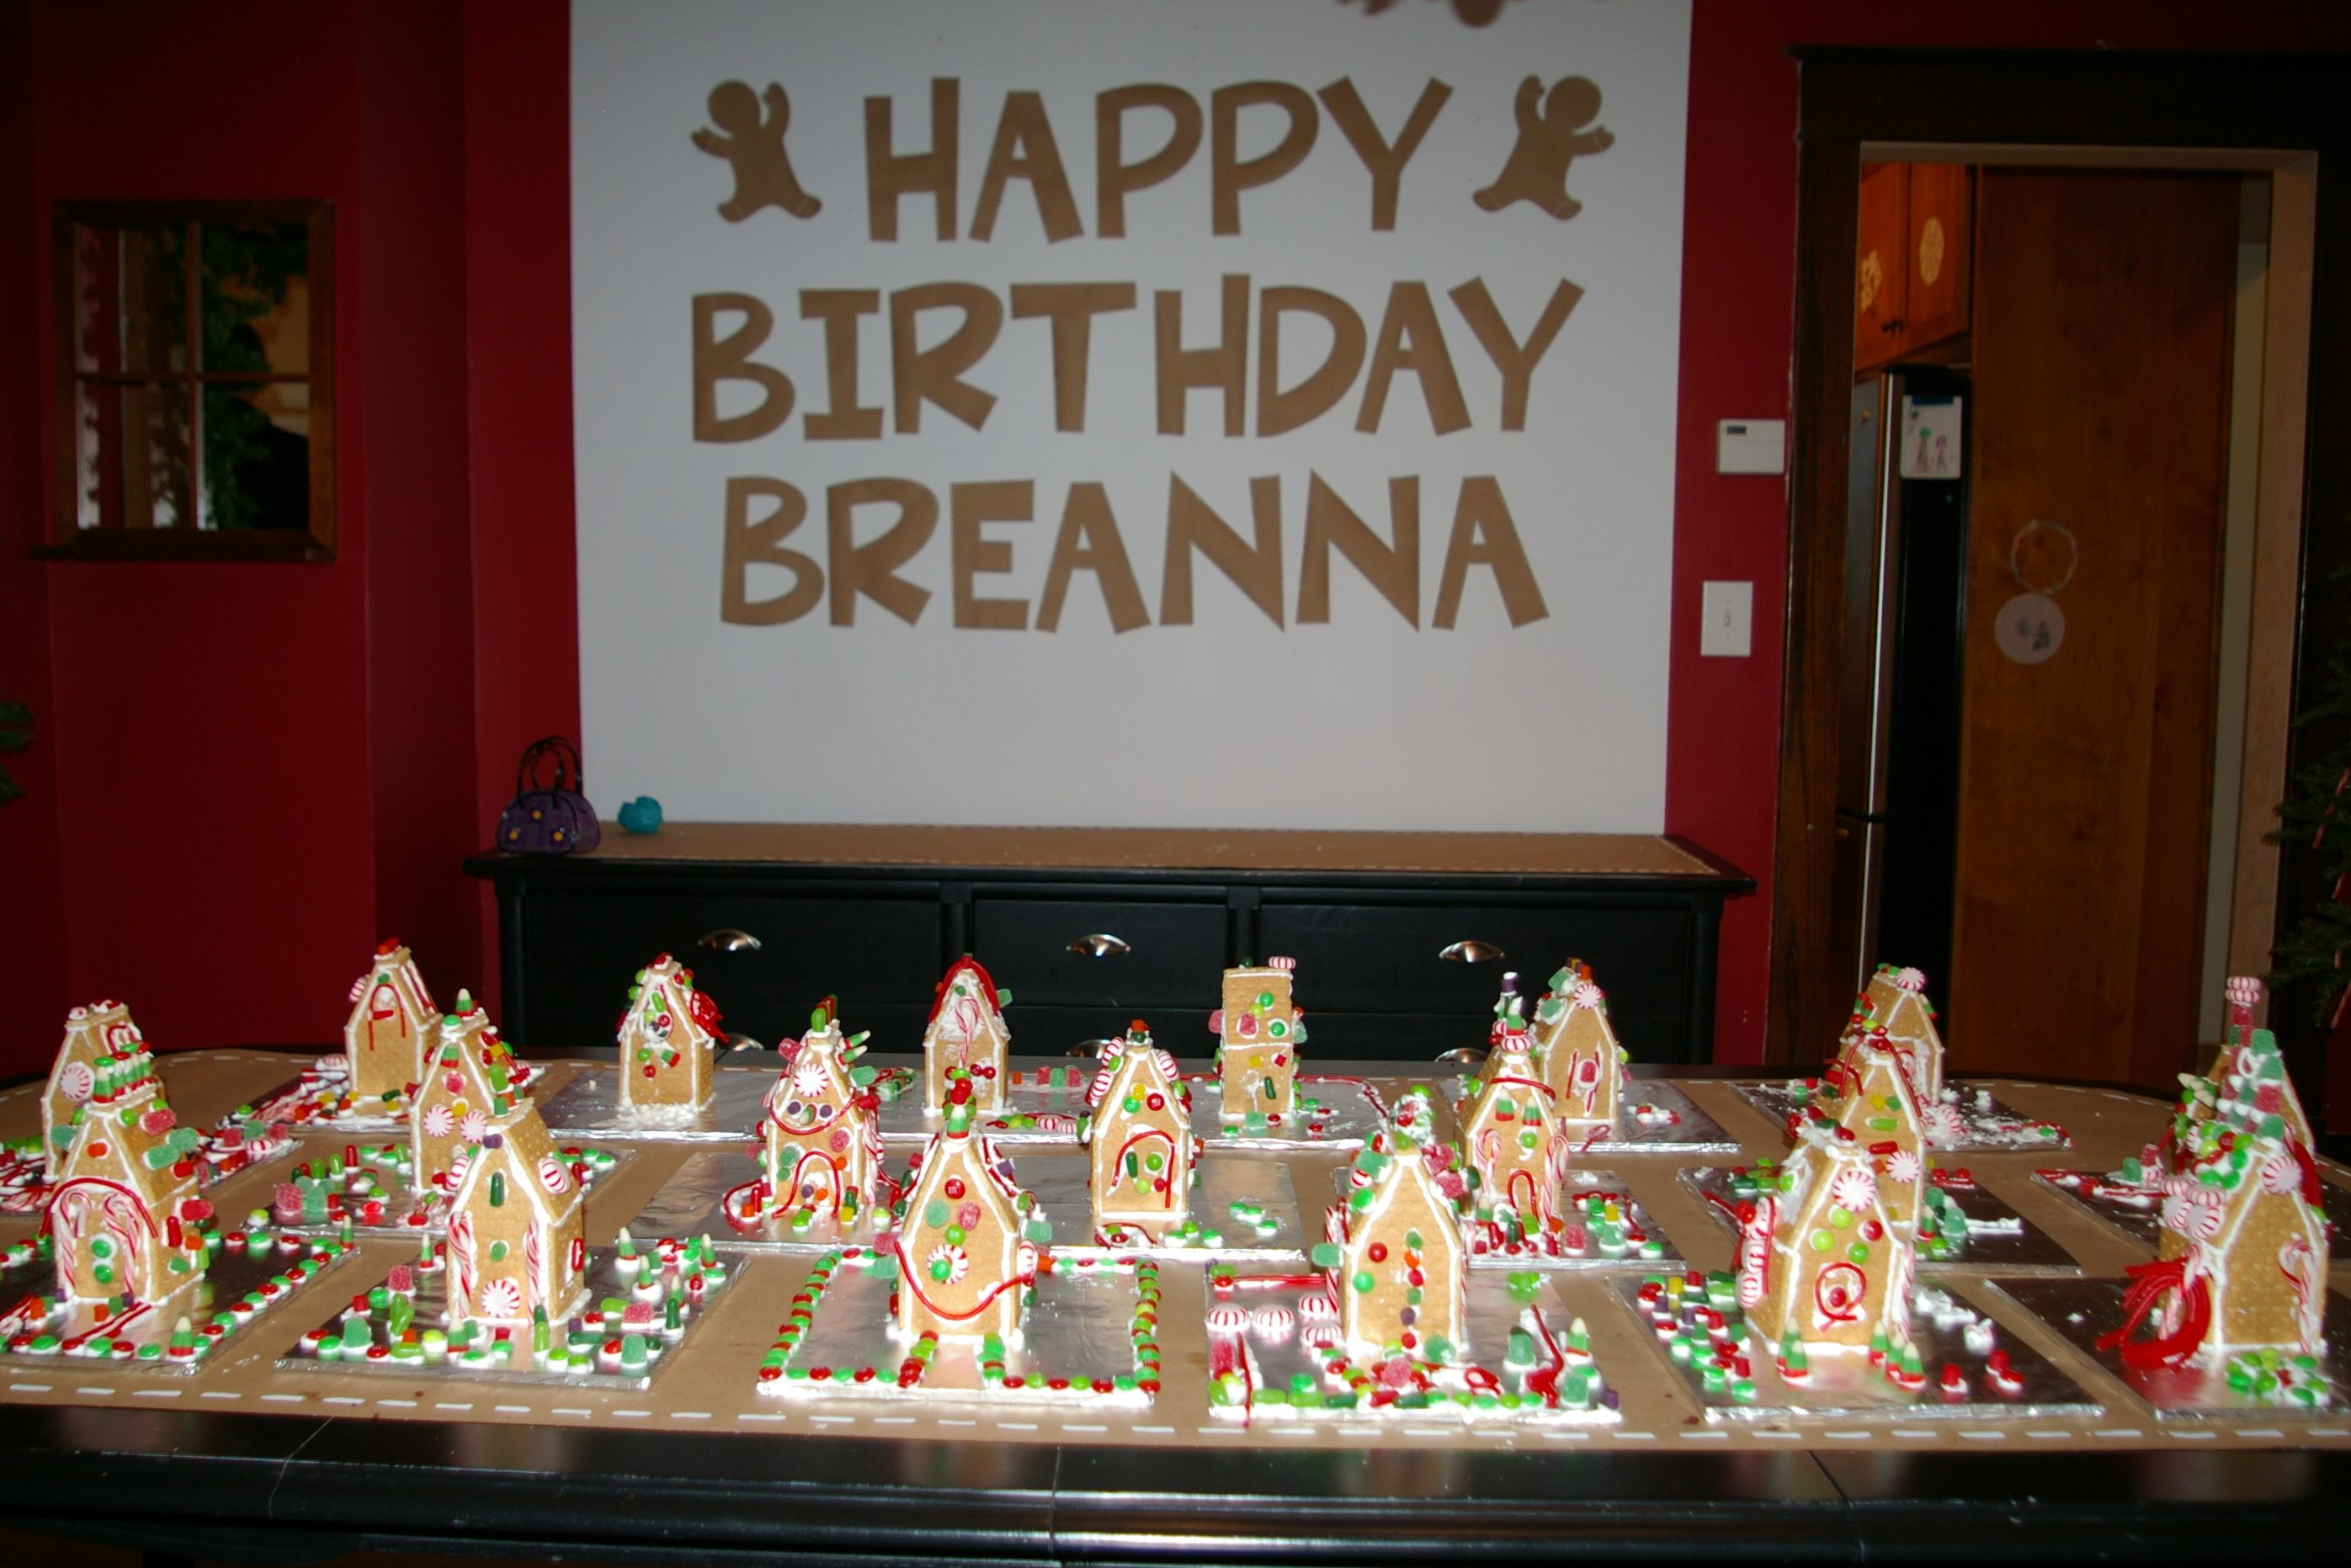 13 Party Ideas for December Birthdays - The Daily Meal